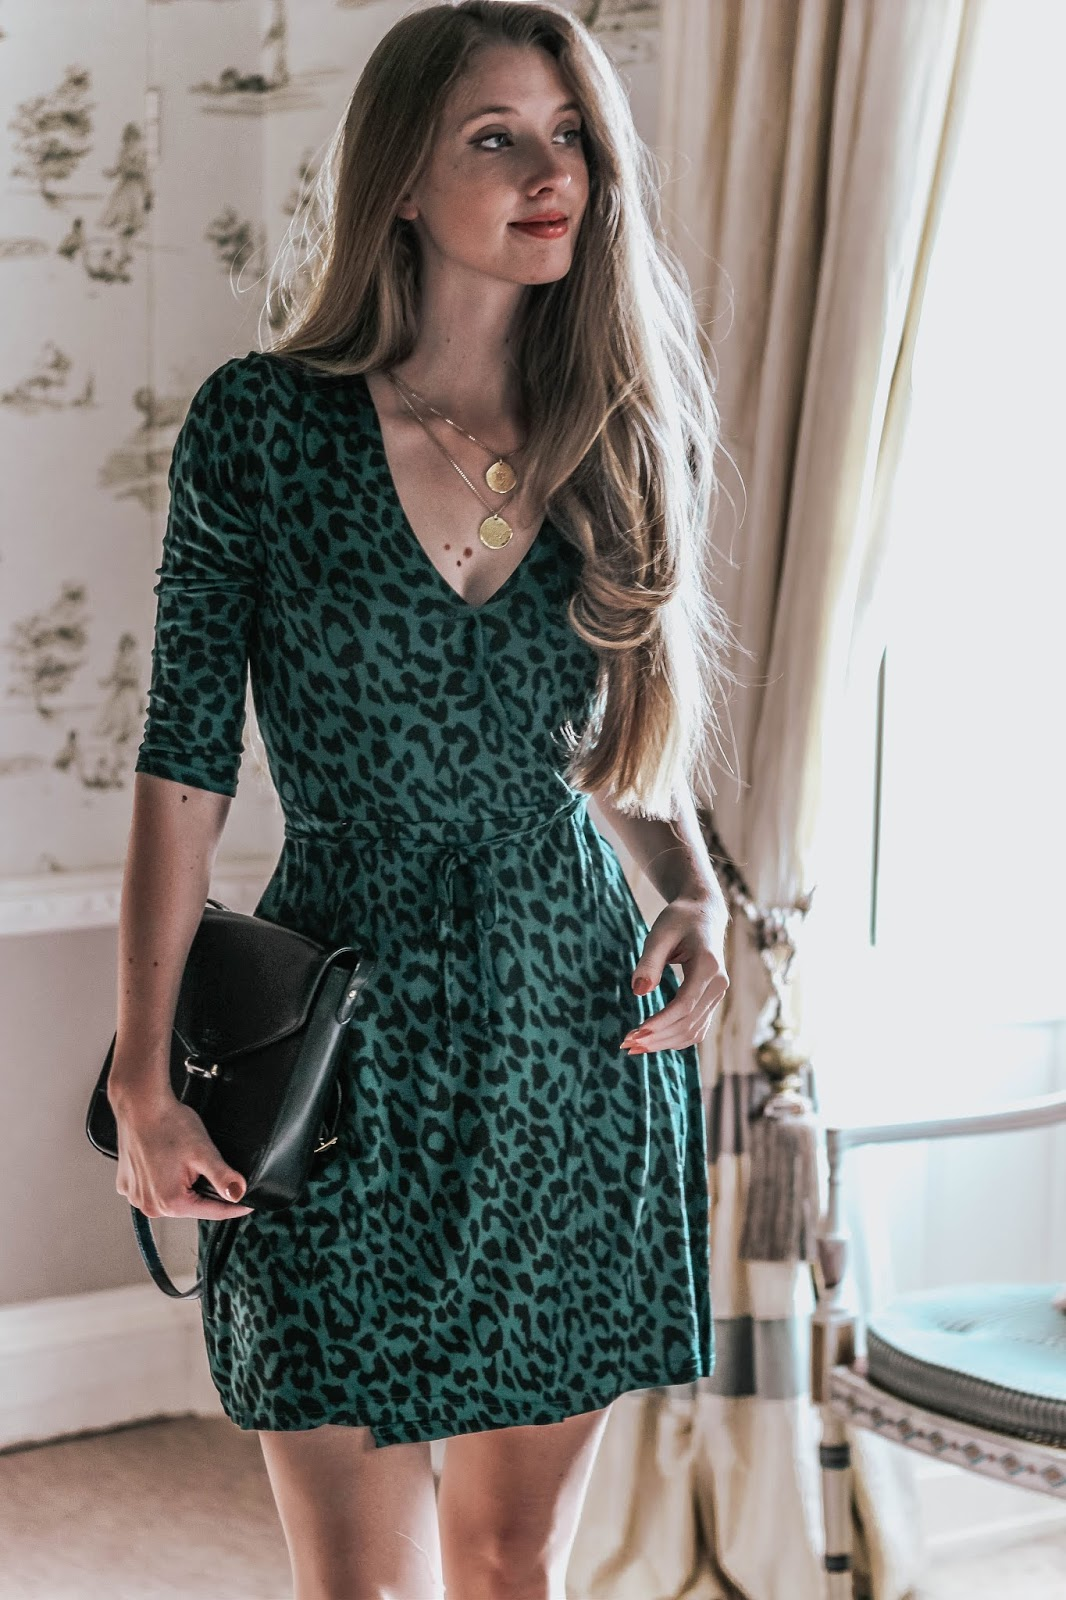 TKMaxx Innocence Green Leopard Print Dress